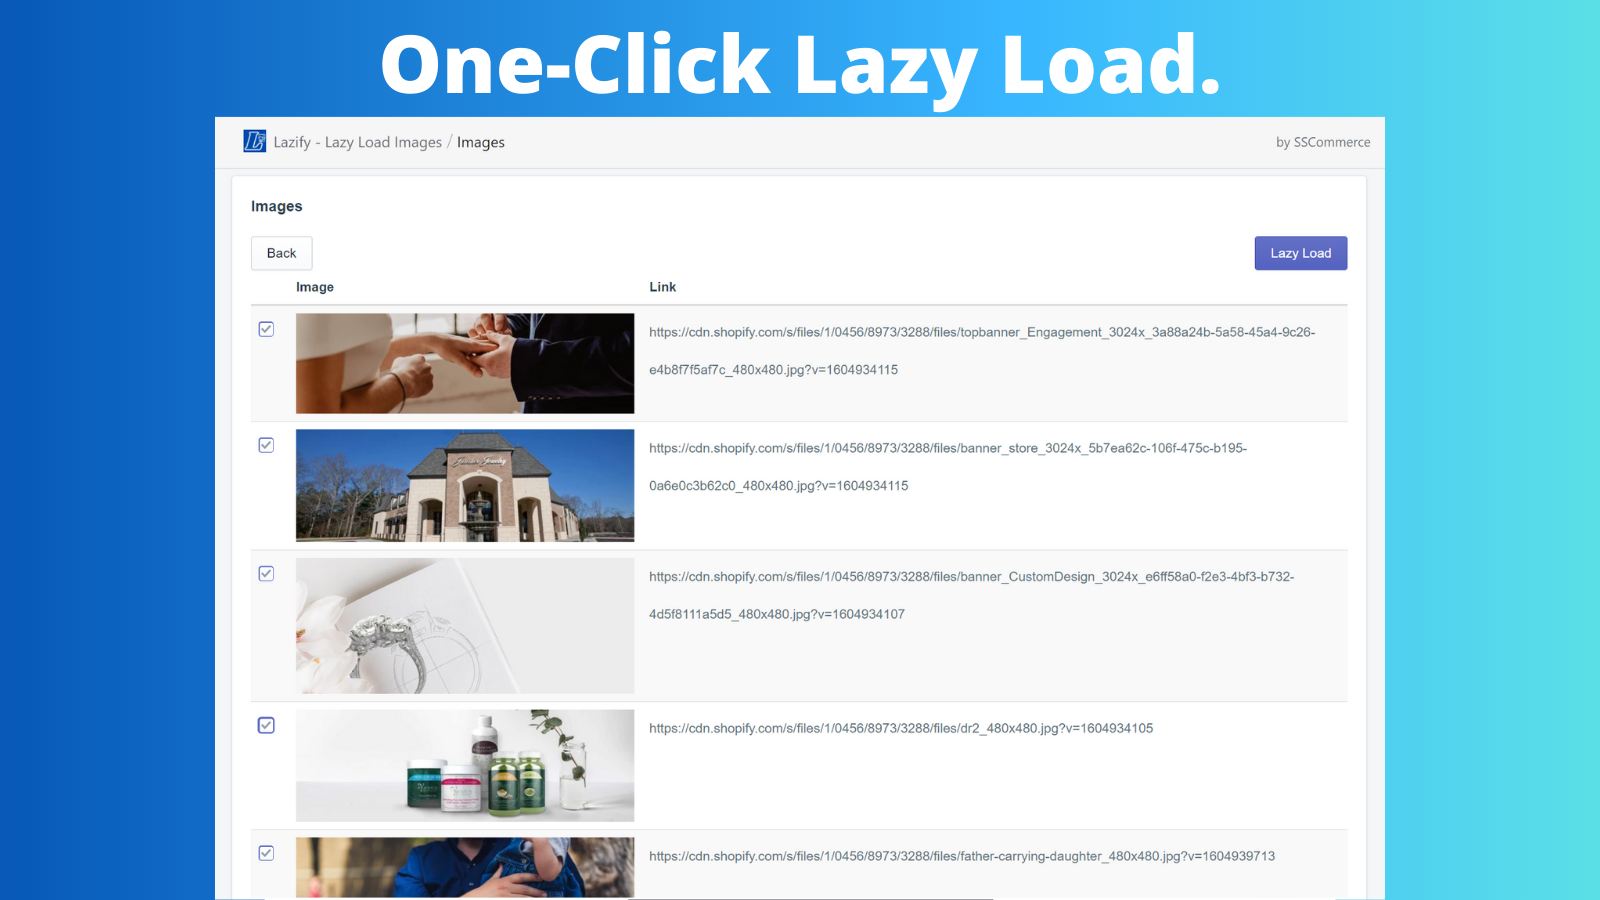 One-Click Lazy Load.